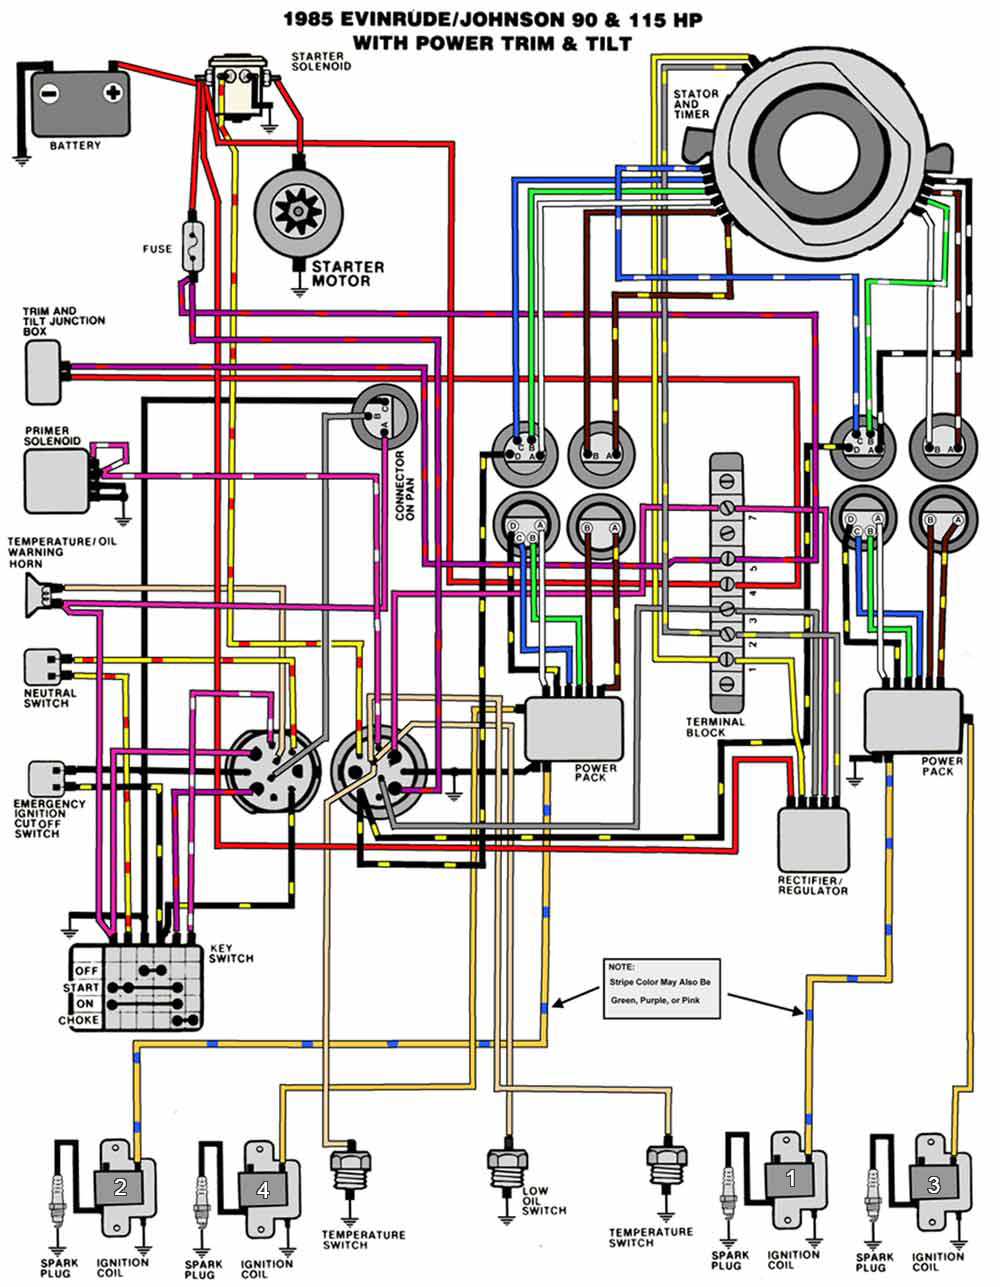 1985_90_115TnT mastertech marine evinrude johnson outboard wiring diagrams mercury outboard trim wiring diagram at gsmx.co